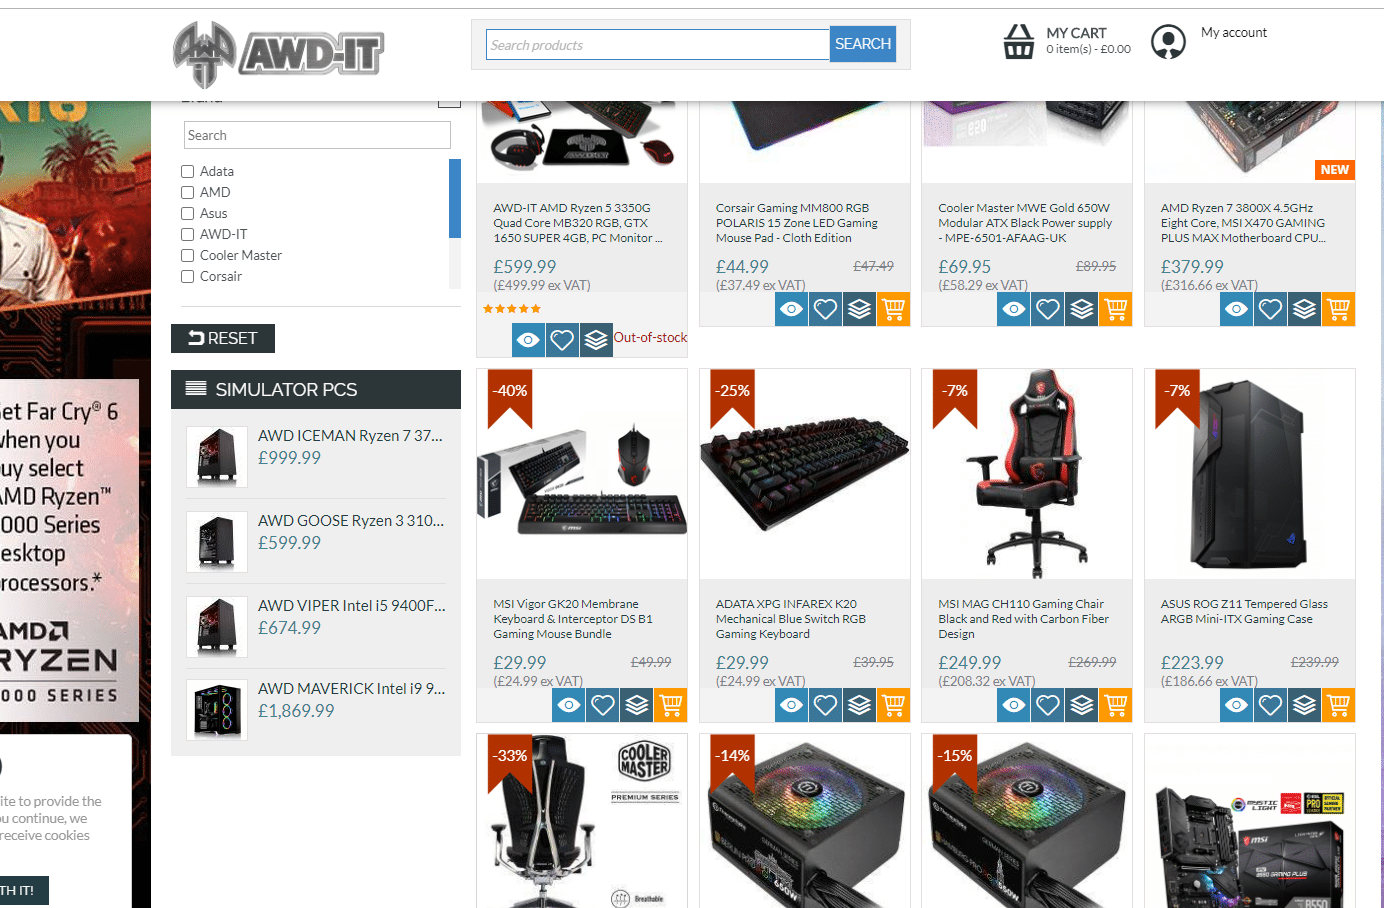 awd-it up to 40% off CHRISTMAS DEALS